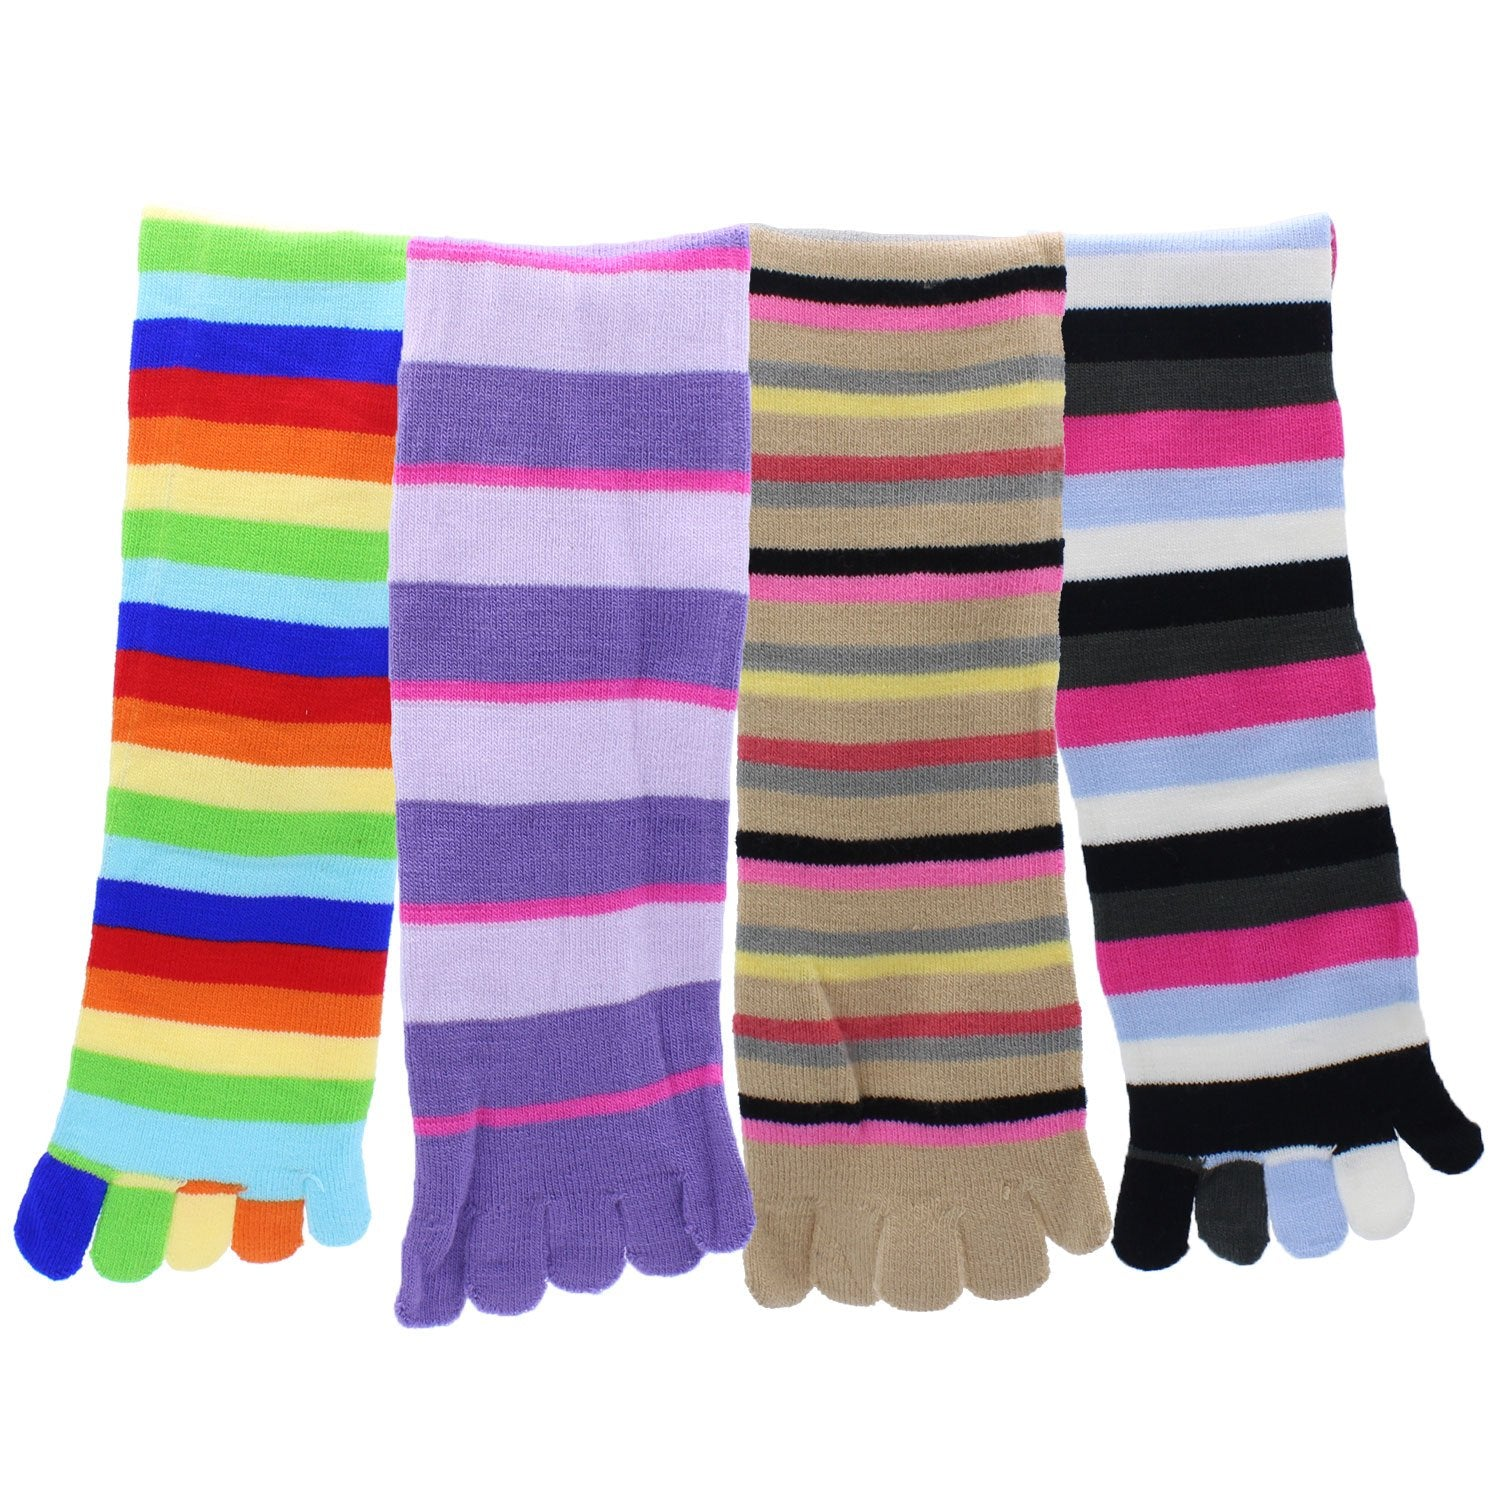 Toe Socks 4-Pack Multicolor Striped - Pack6